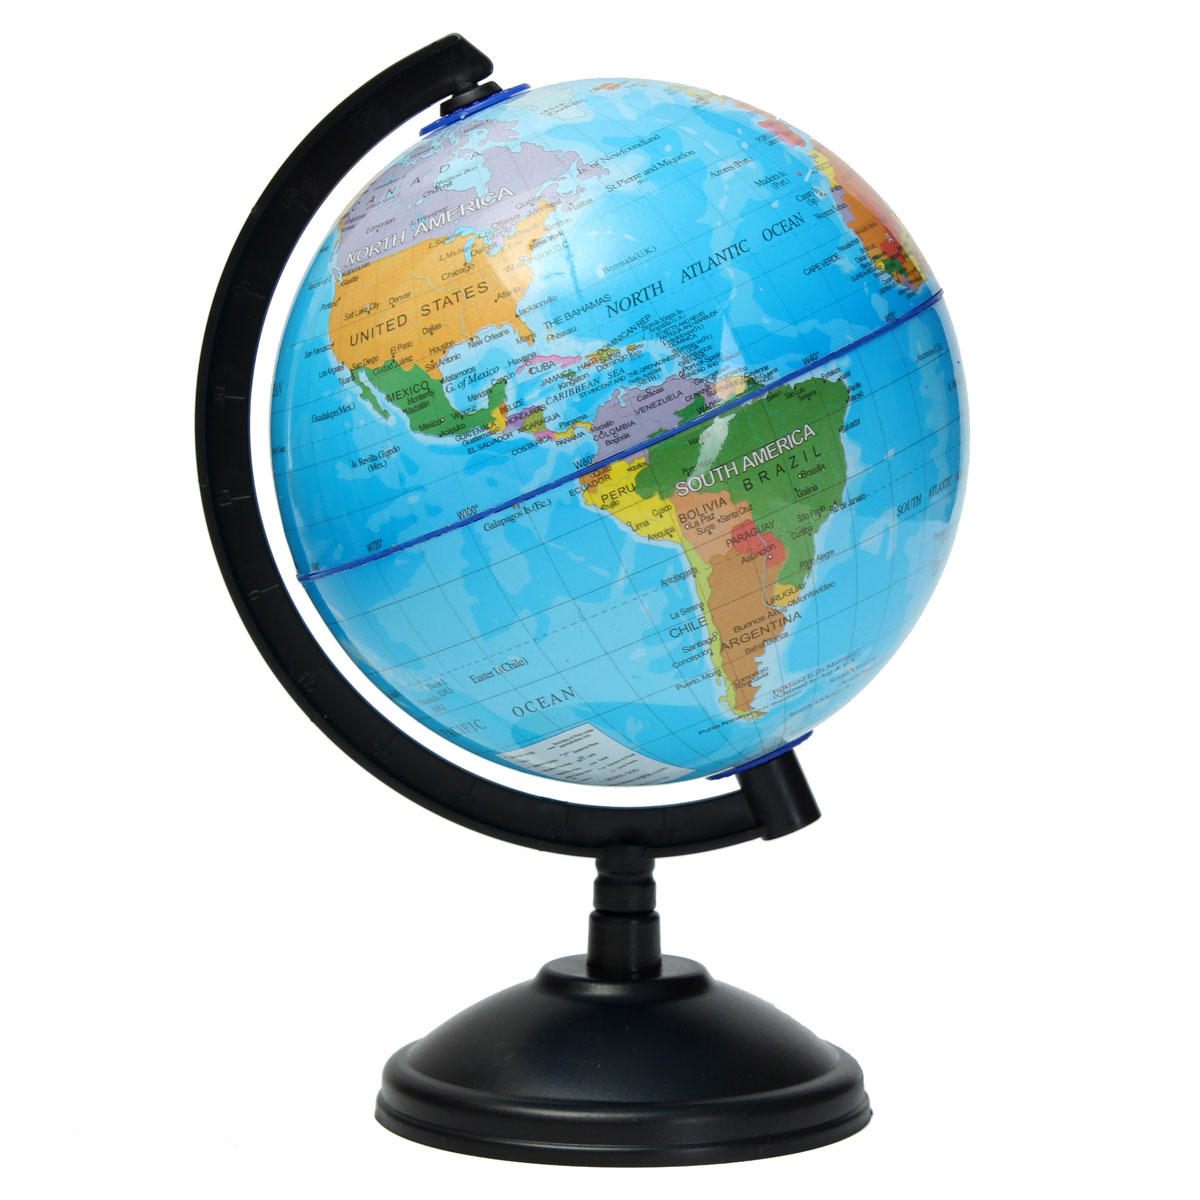 14cm world globe atlas map with swivel stand geography educational 14cm world globe atlas map with swivel stand geography educational toy kids gift gumiabroncs Choice Image